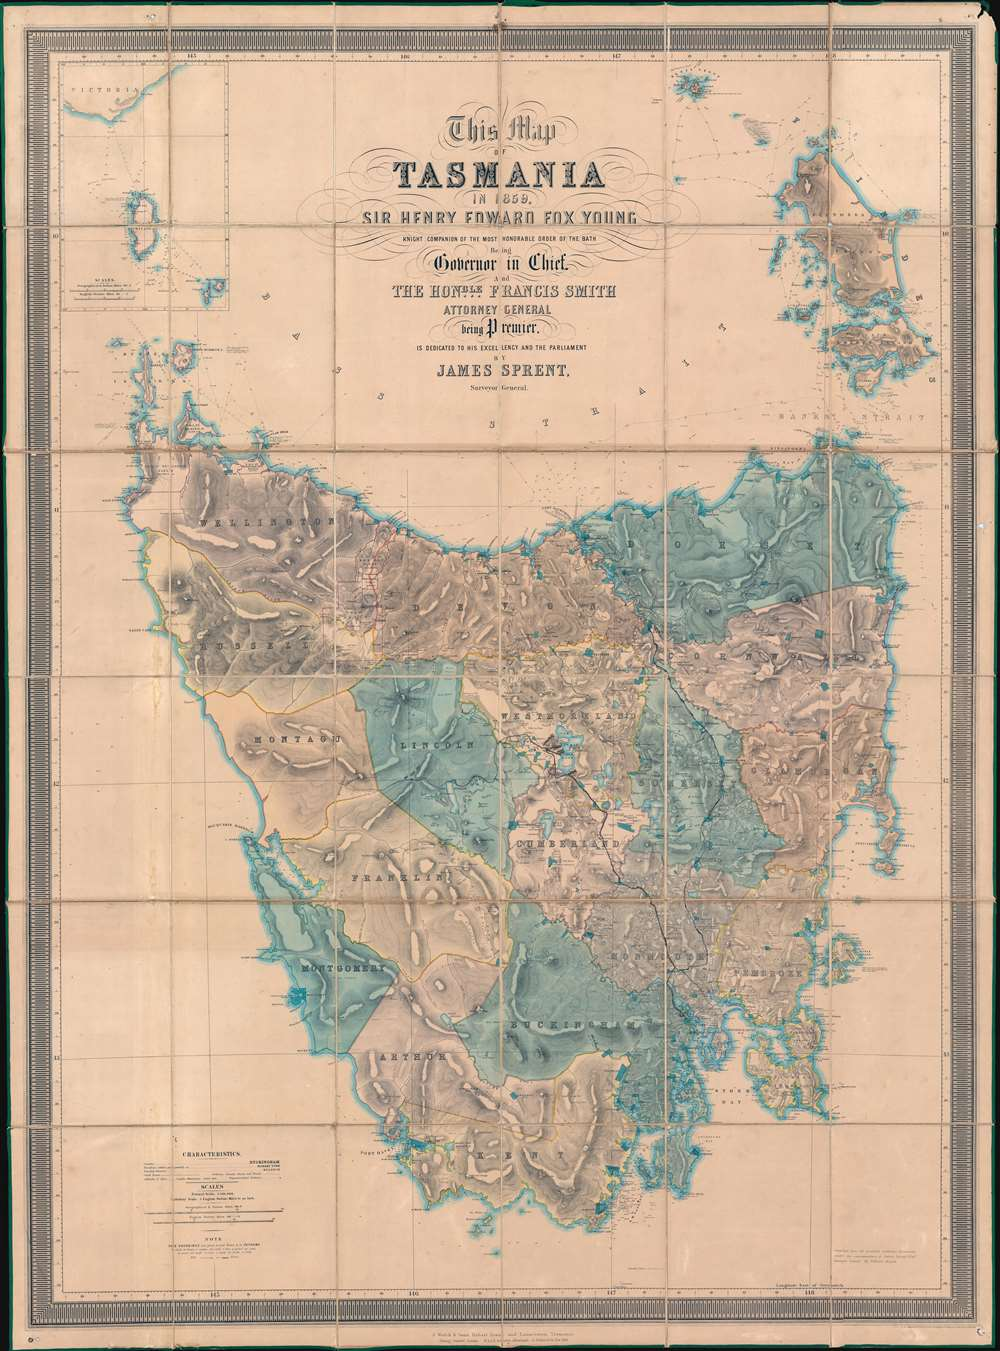 This Map of Tasmania in 1859, Sir Henry Edward Fox Young Knight Companion of the Most Honorable Order of the Bath Being Governor in Chief, and teh Honble. Francis Smigh Attorney General being Premier is dedicated to his Excellency and the Parliament by James Sprent, Surveyor General. - Main View